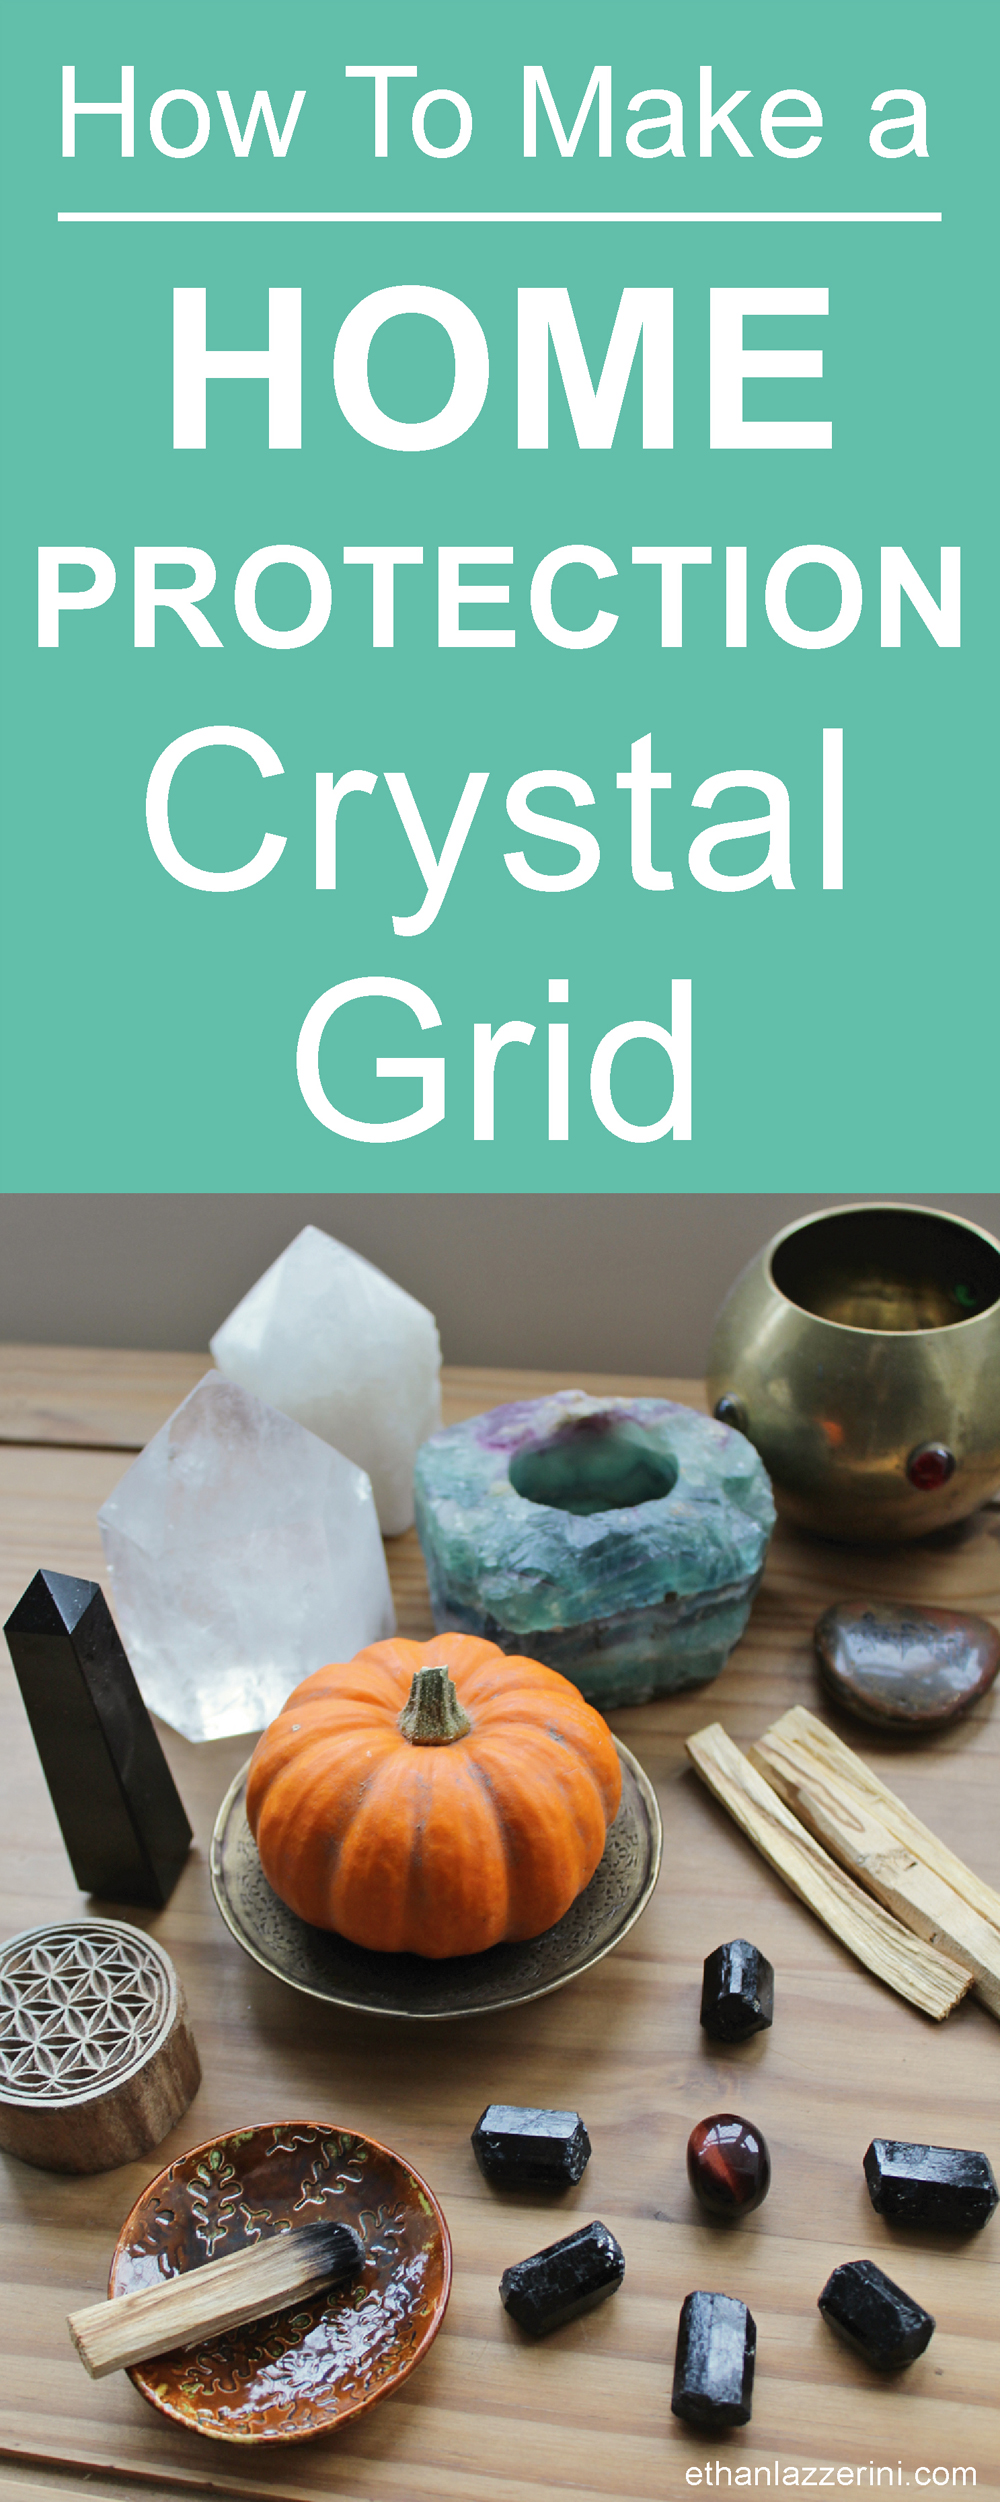 Home Protection Crystal Grid